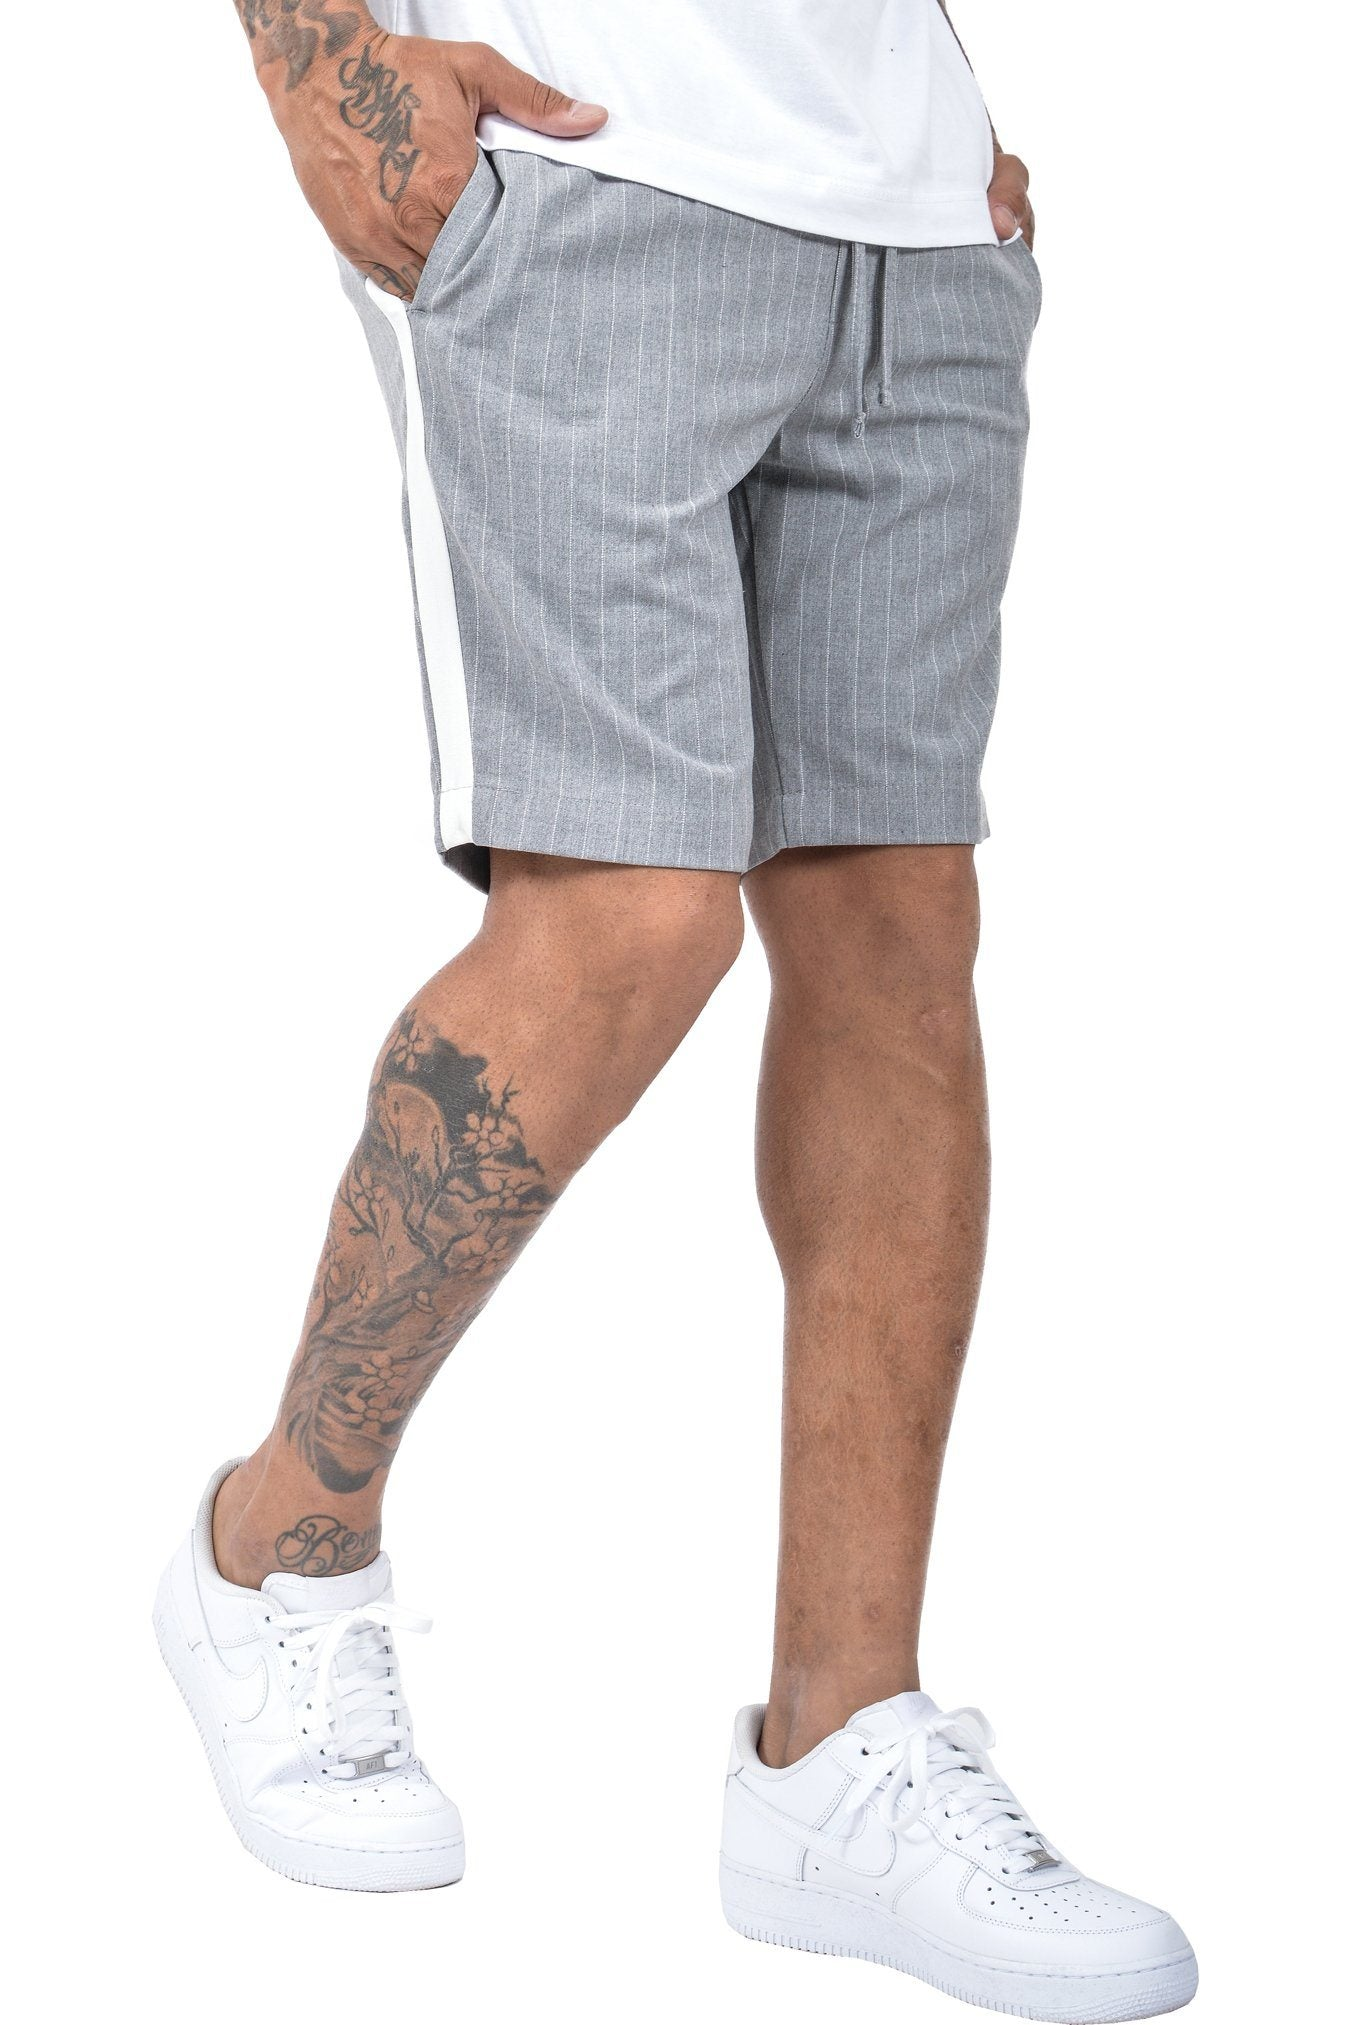 Granada Pinstripe Shorts Grey White - PEGADOR - Dominate the Hype